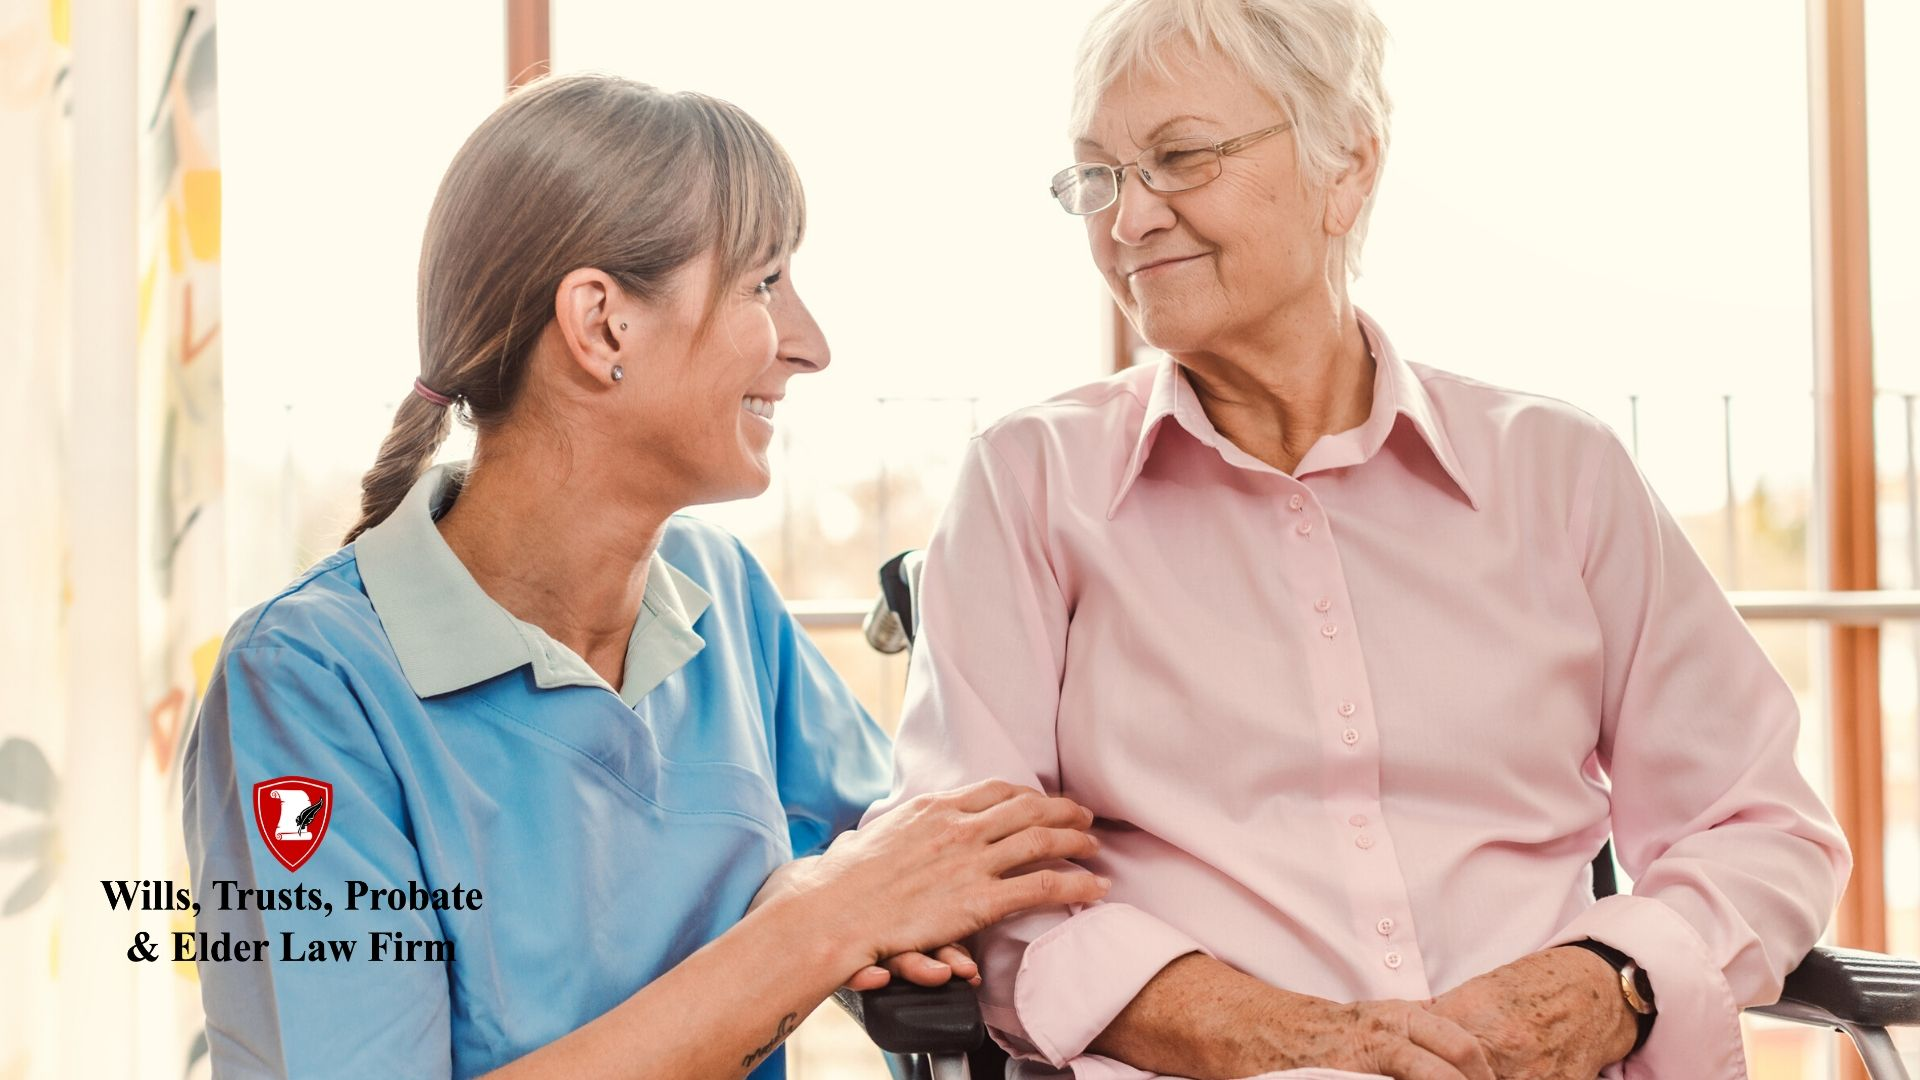 can-i-transfer-my-assets-just-before-going-into-a-nursing-home-to-qualify-for-medicaid